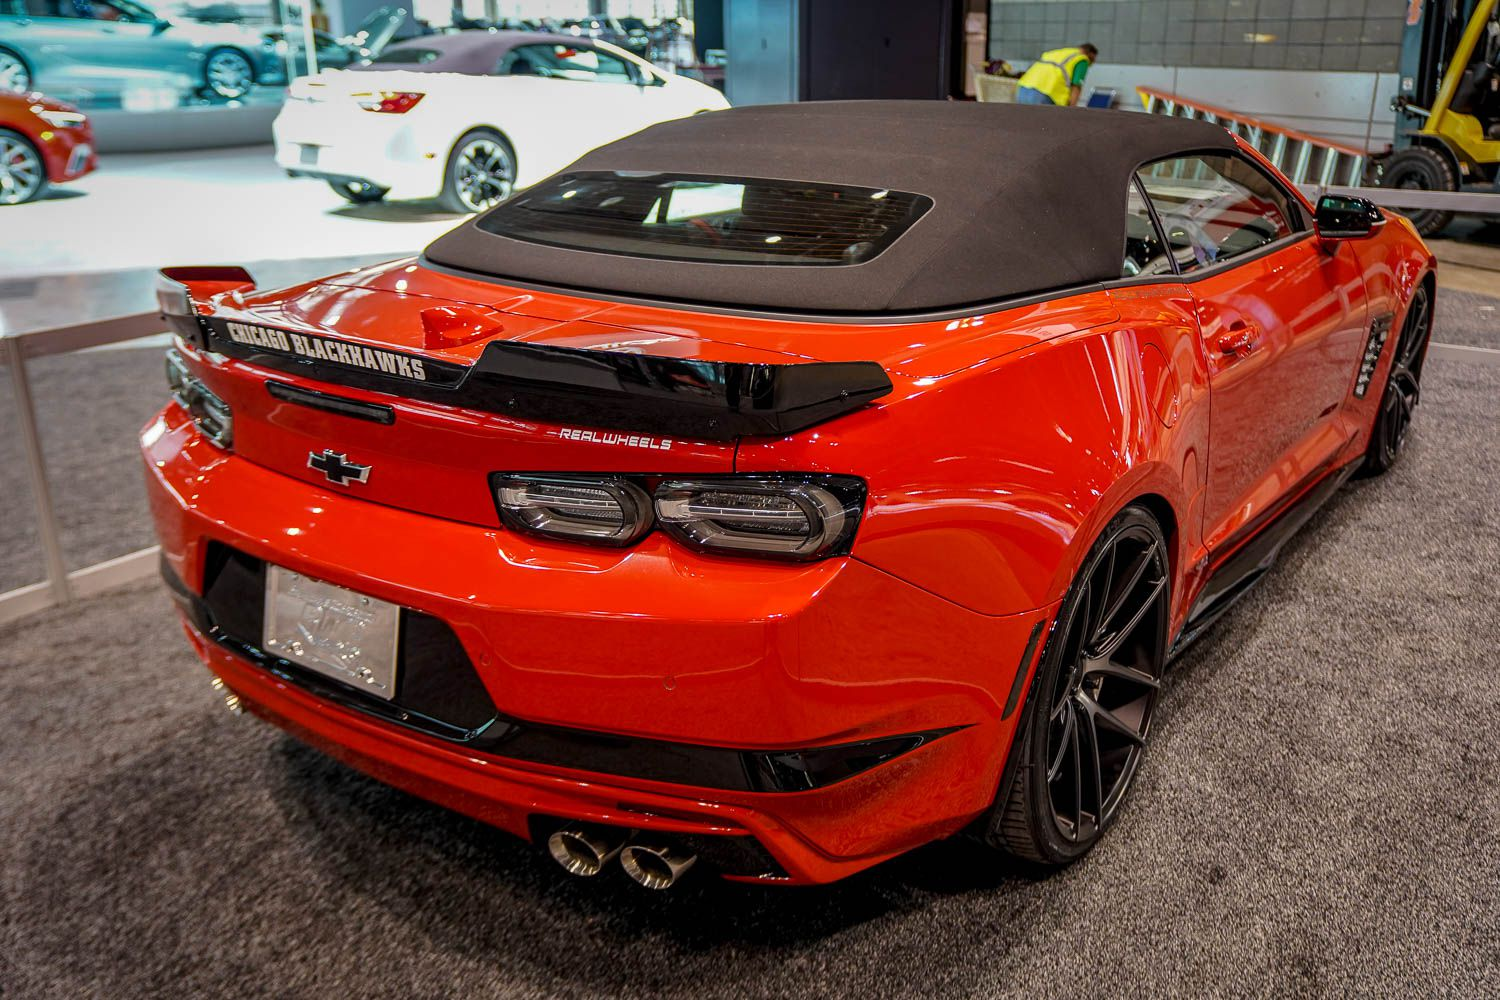 Photo 11: 2019 Chicago Blackhawks Chevrolet Camaro 2SS Convertible